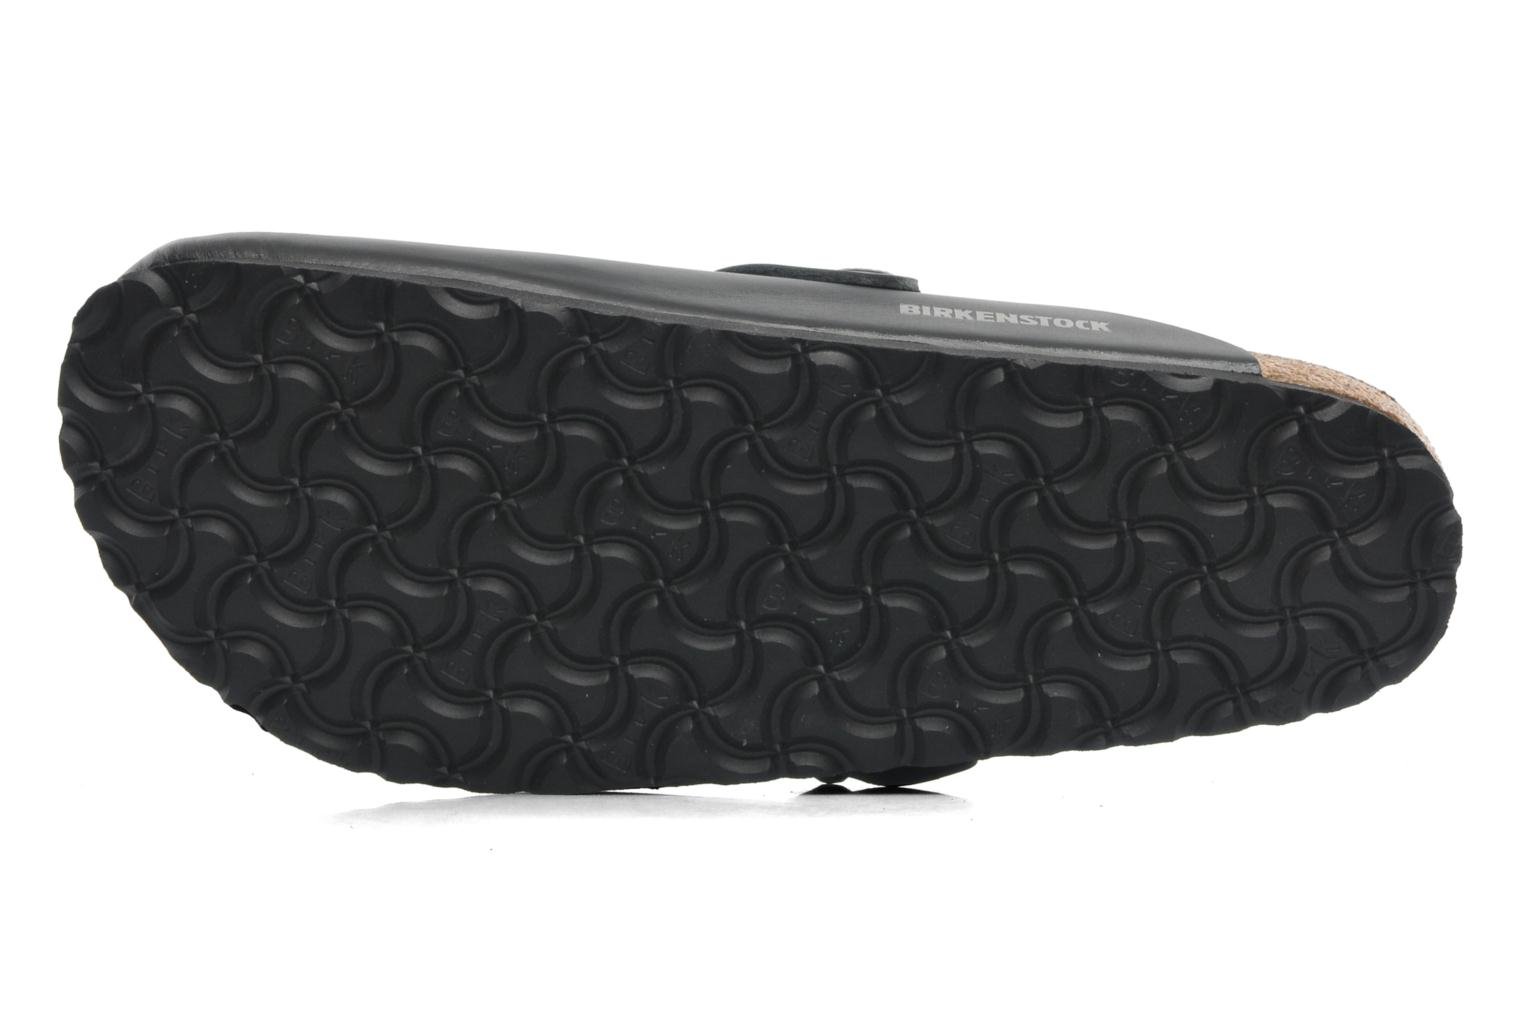 Boston Cuir M Noir mat